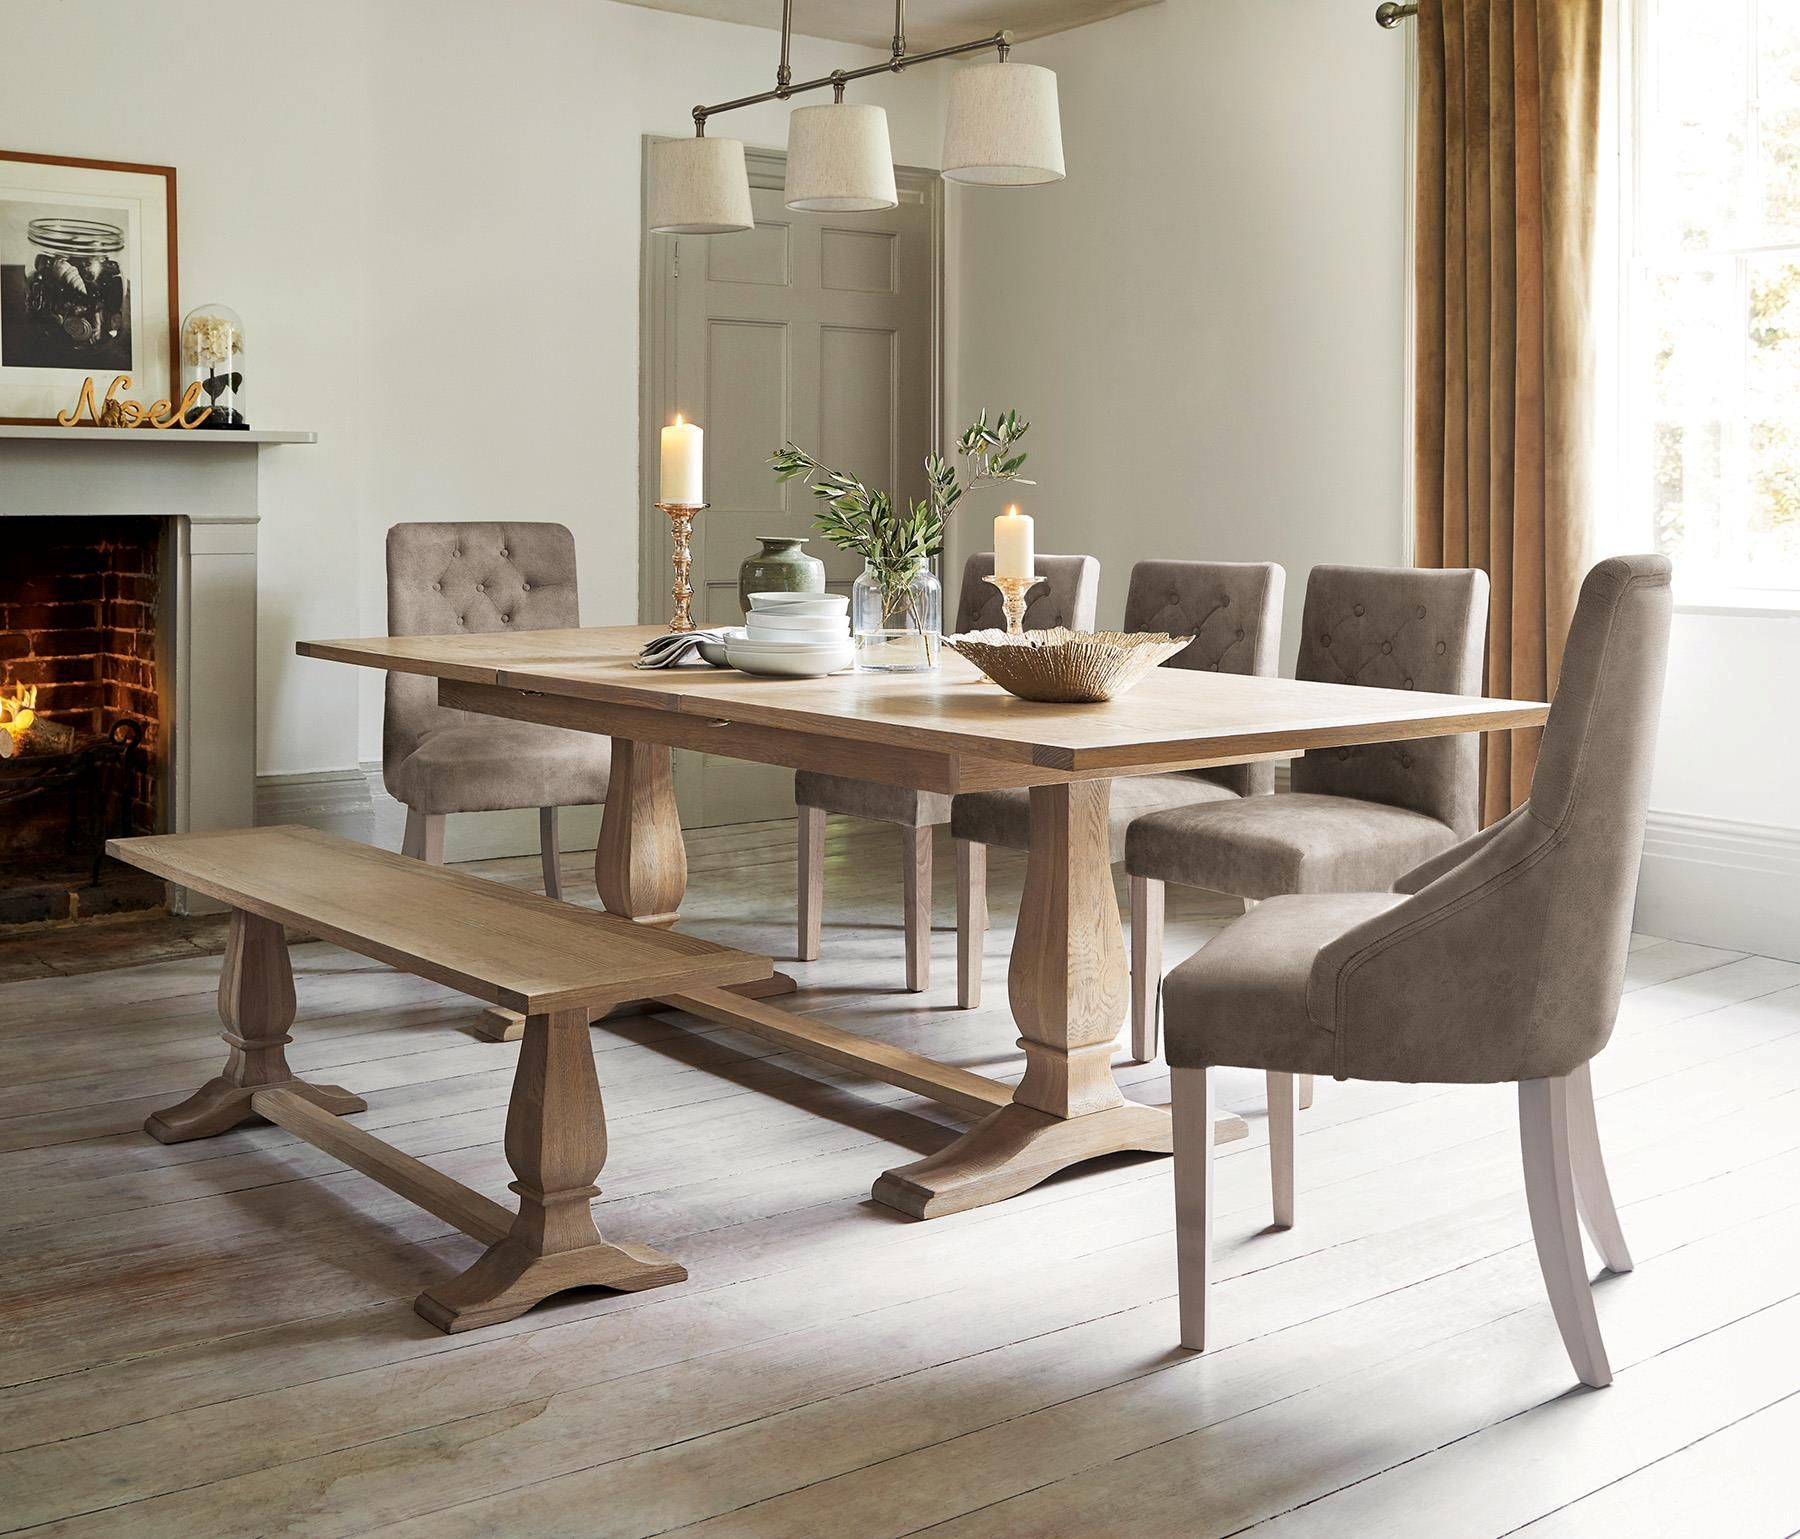 Buy hardwick seater extending dining table from the next uk